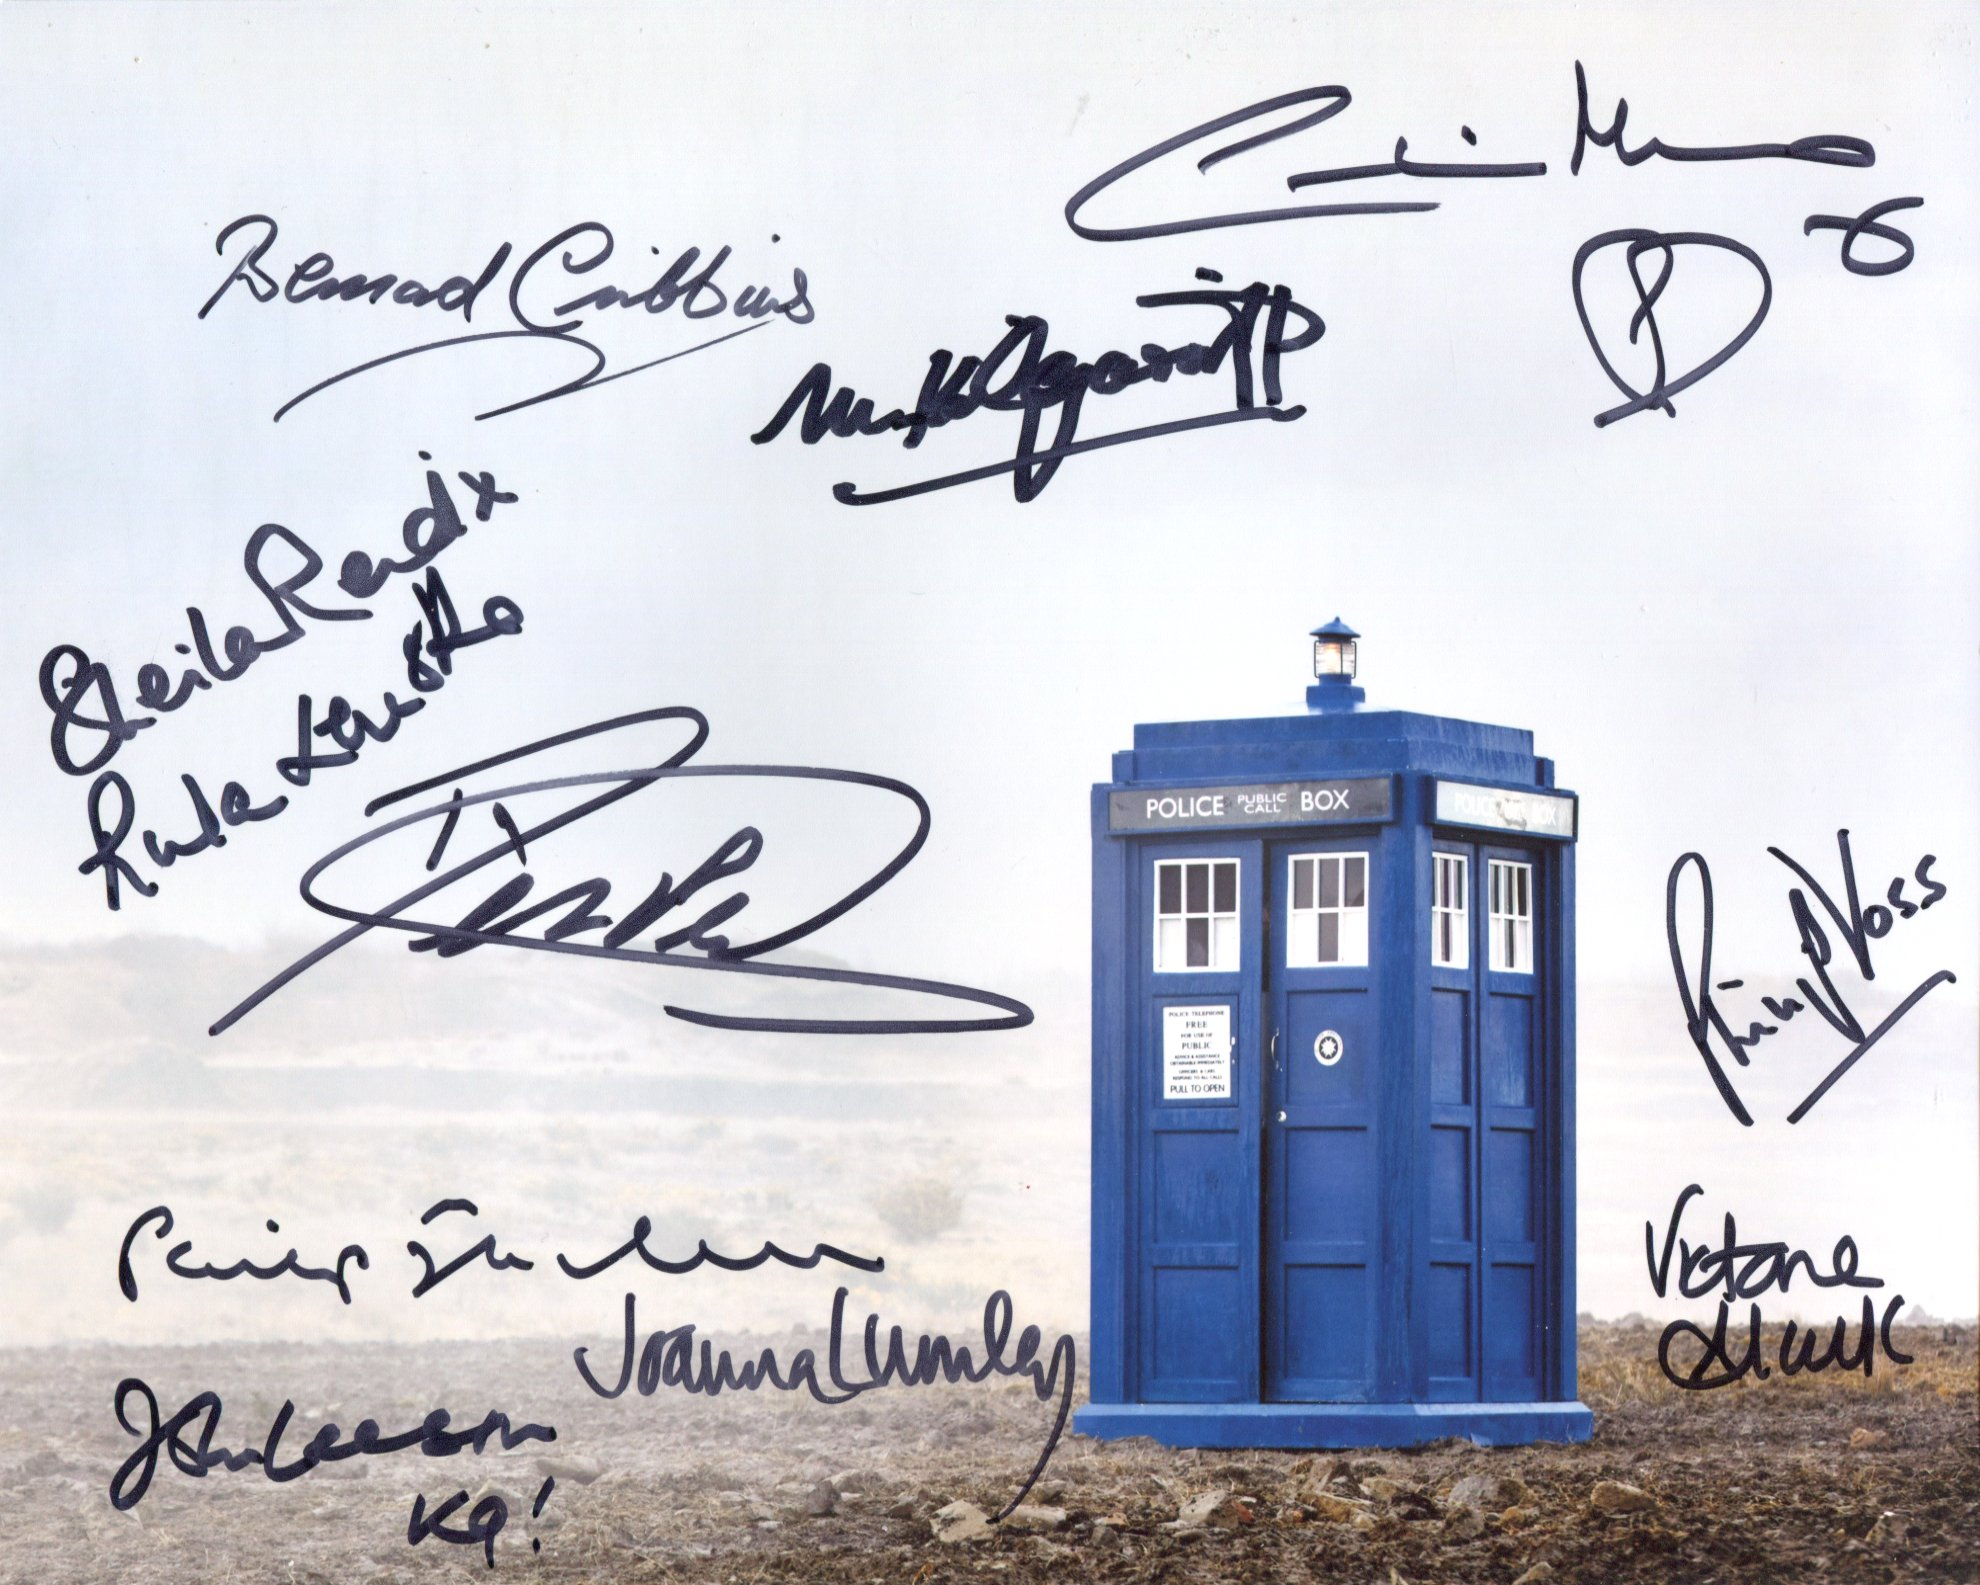 Doctor Who 8x10 photo signed by ELEVEN actors who have starred in the series to include Joanna